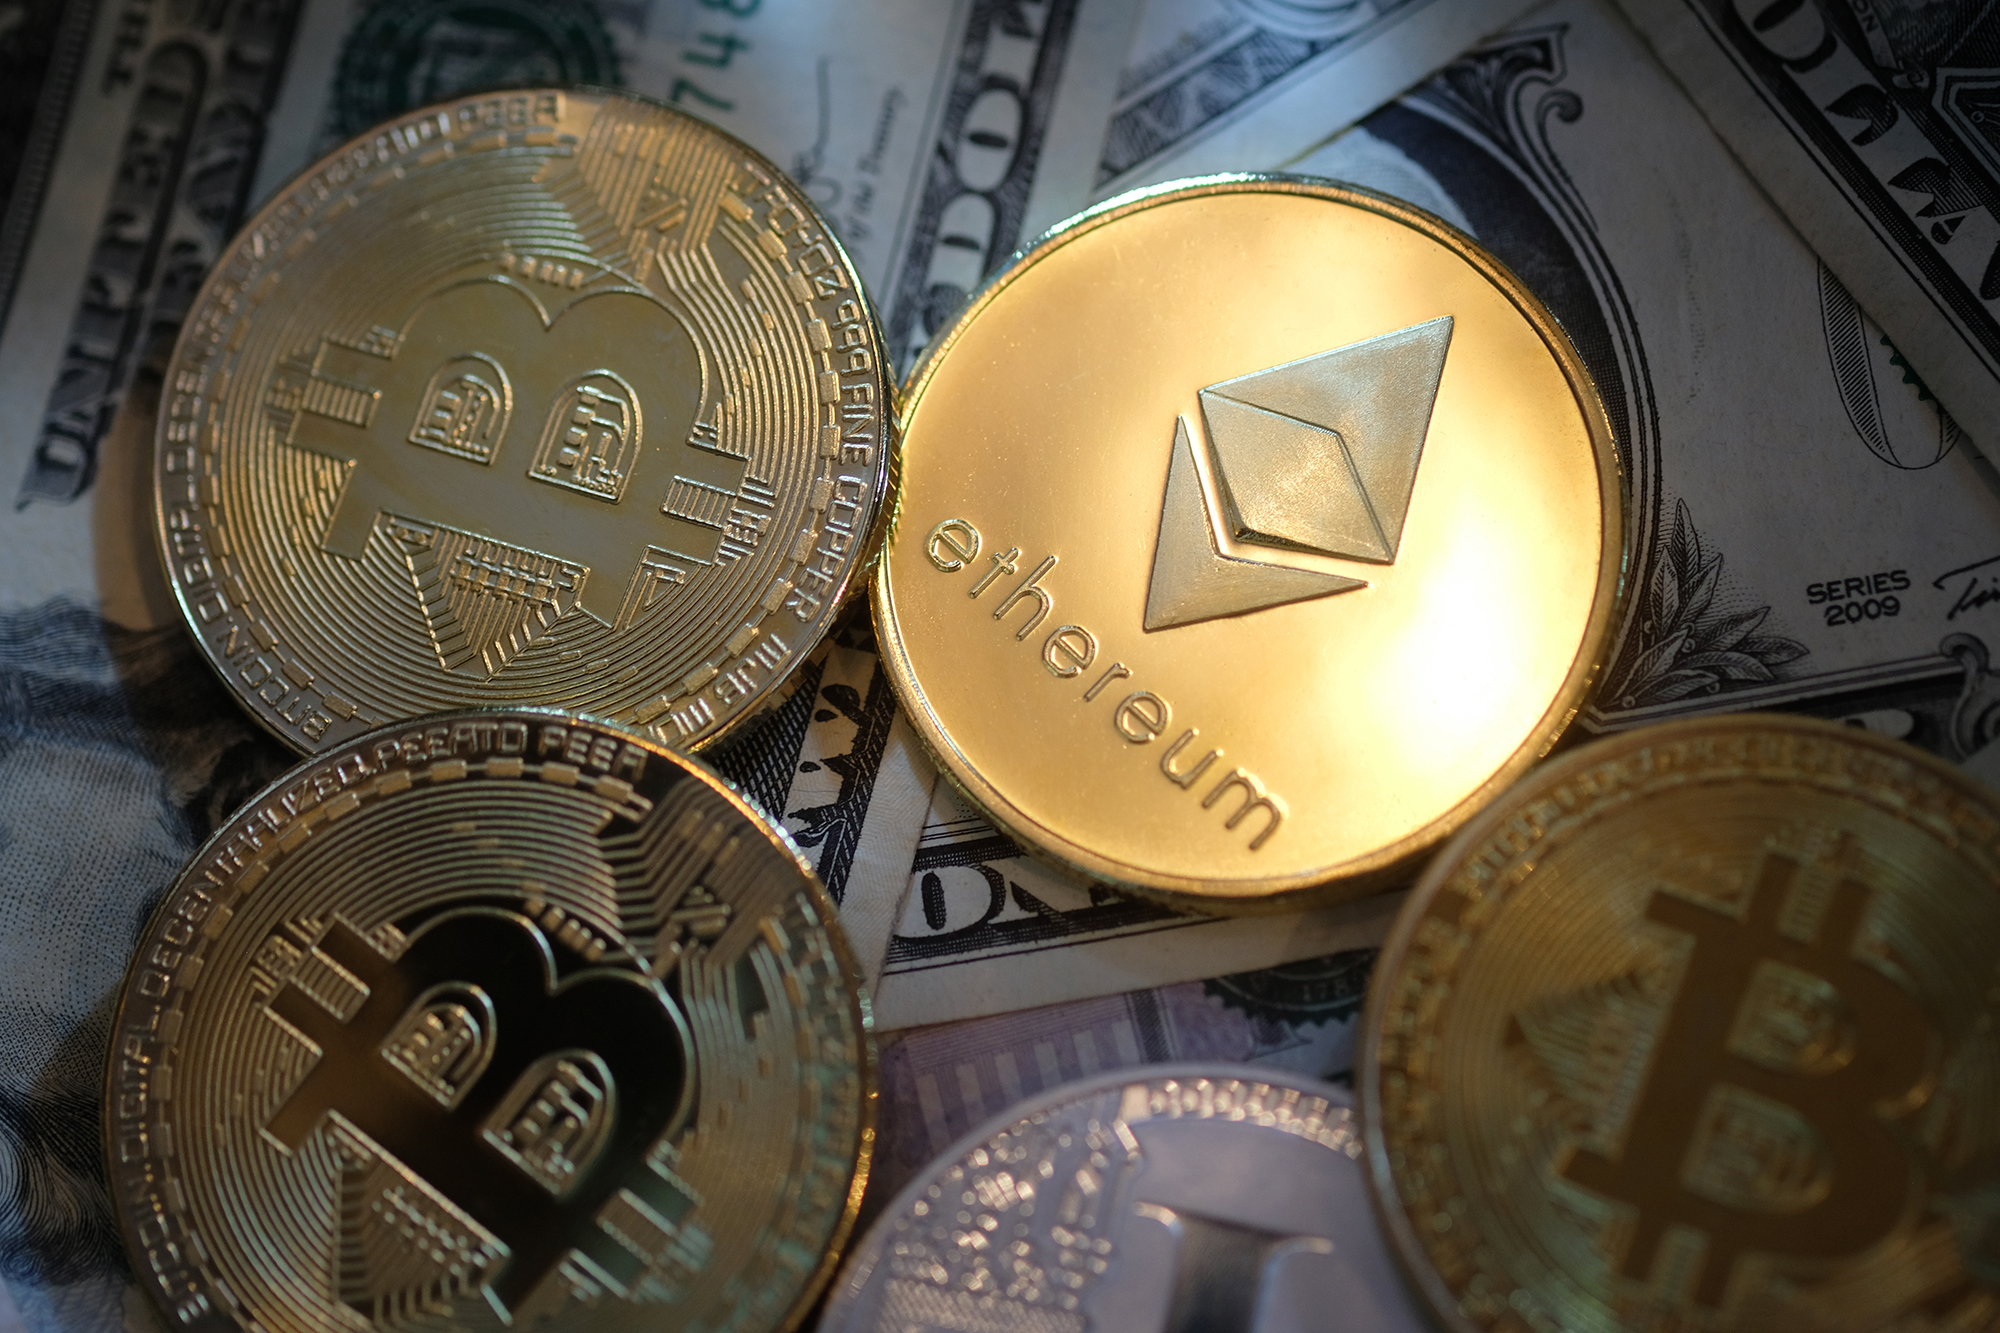 Ethereum is leaving bitcoin in the crypto dust